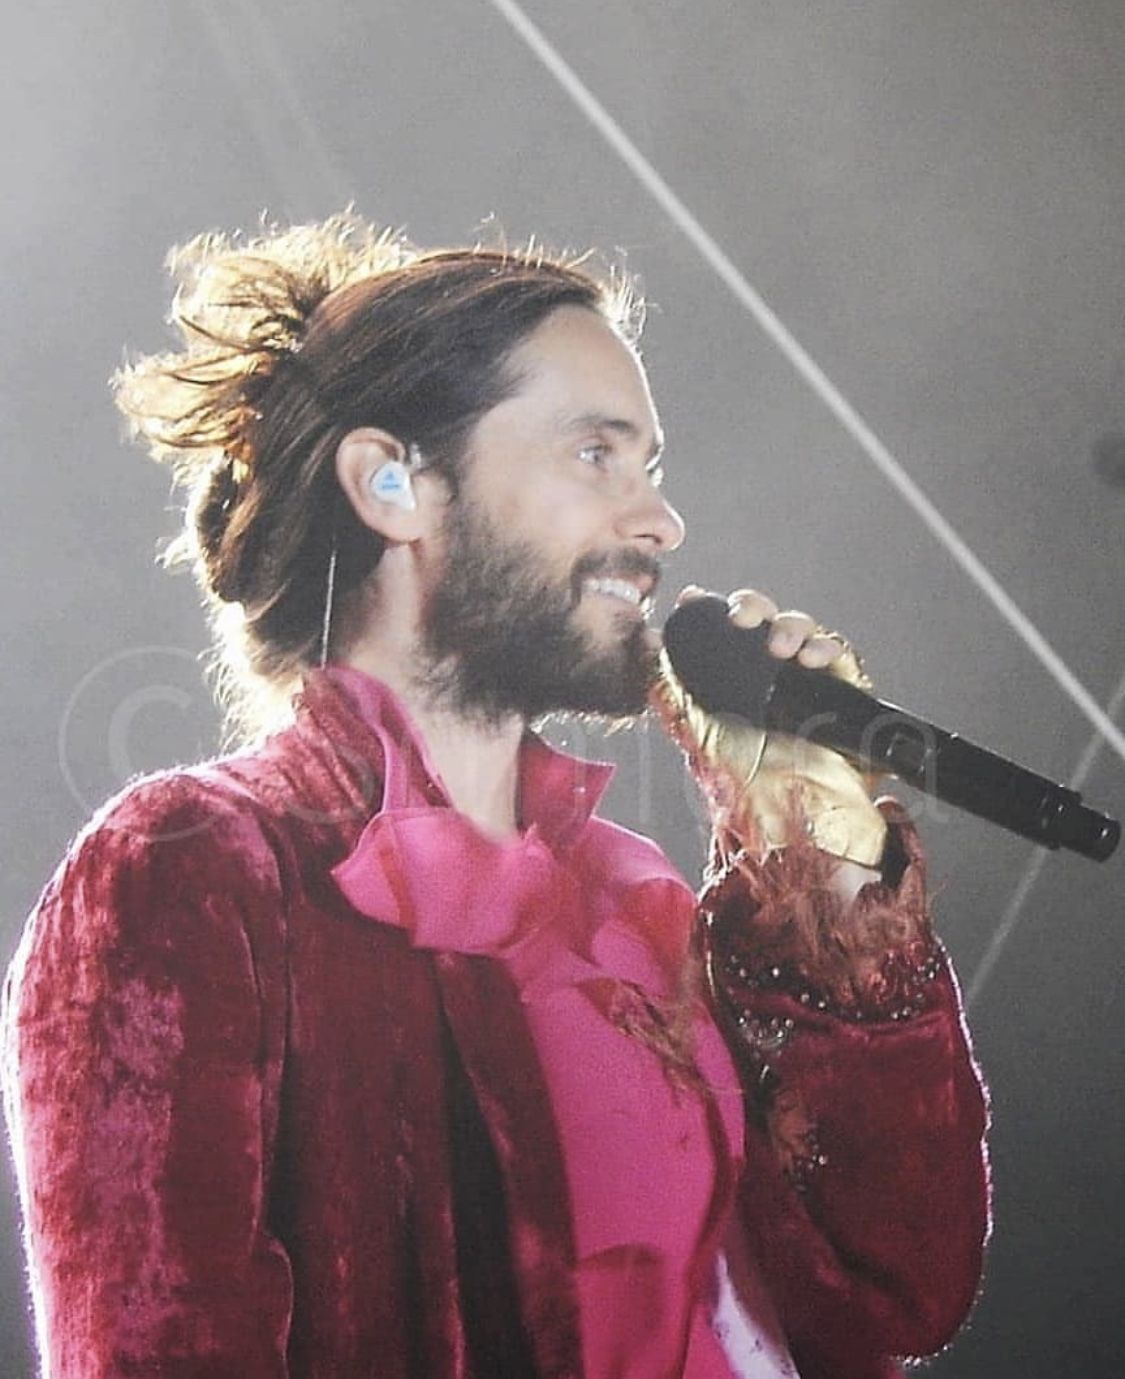 Salem Germany 16 08 2019 Jared Leto Shannon Leto Great Wide Open